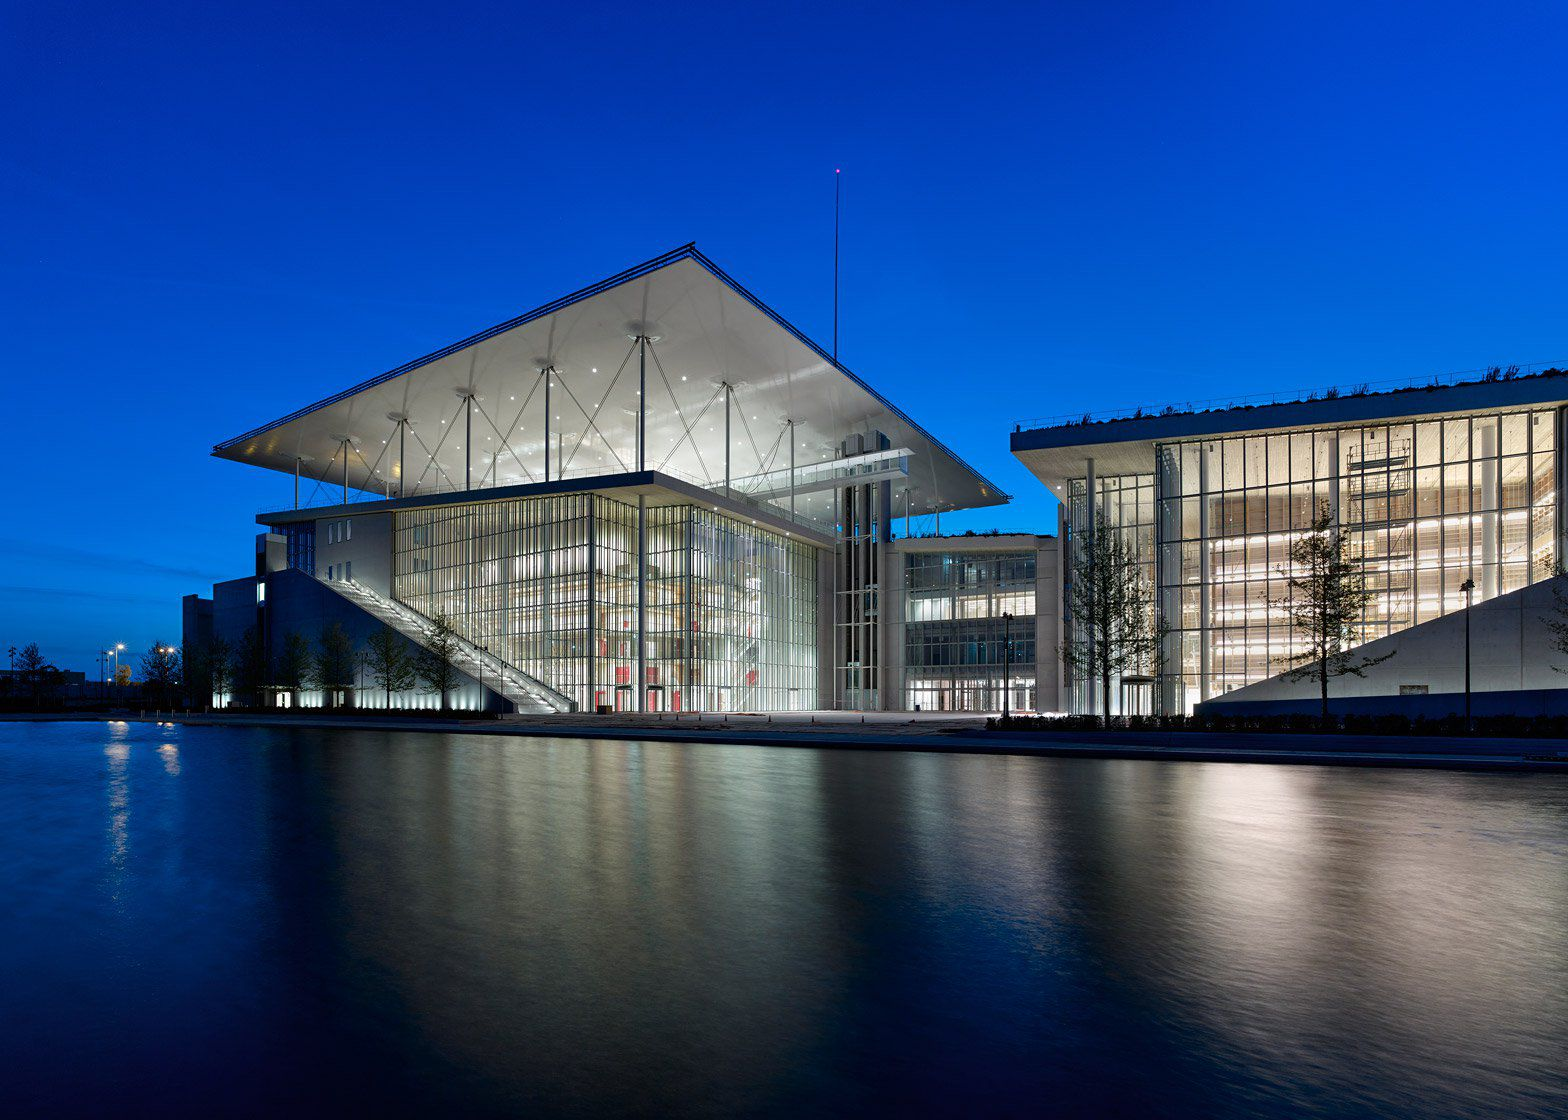 Stavros-Niarchos-Foundation-Cultural-Center-Atene-progetto-Renzo-Piano-Building-Worskhop